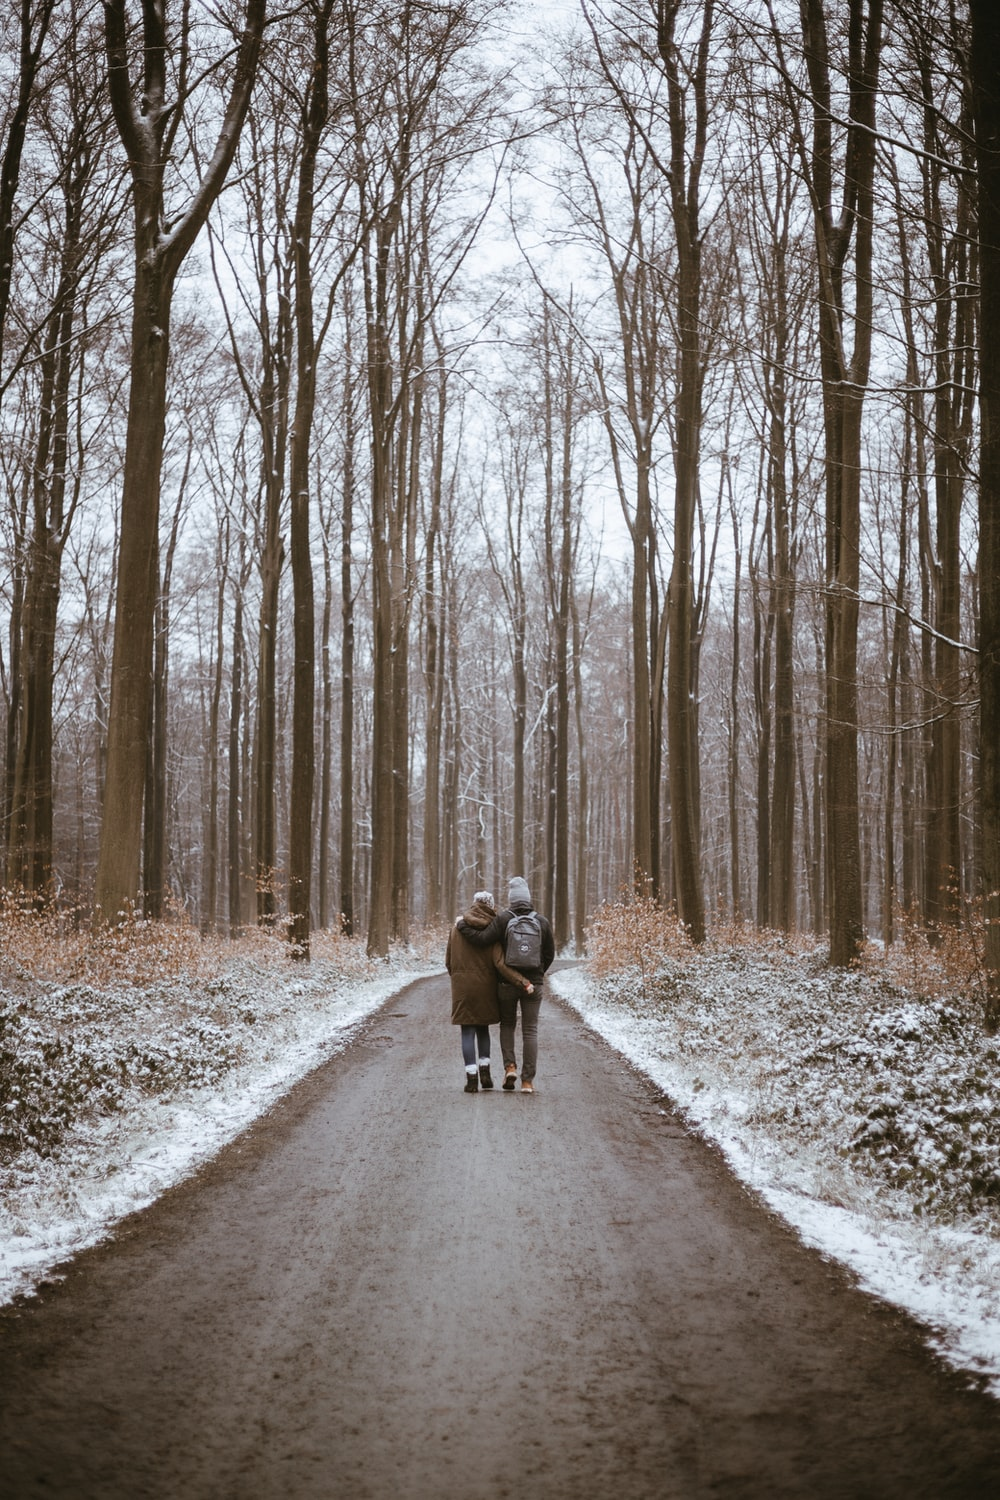 2 dogs running on road between bare trees during daytime